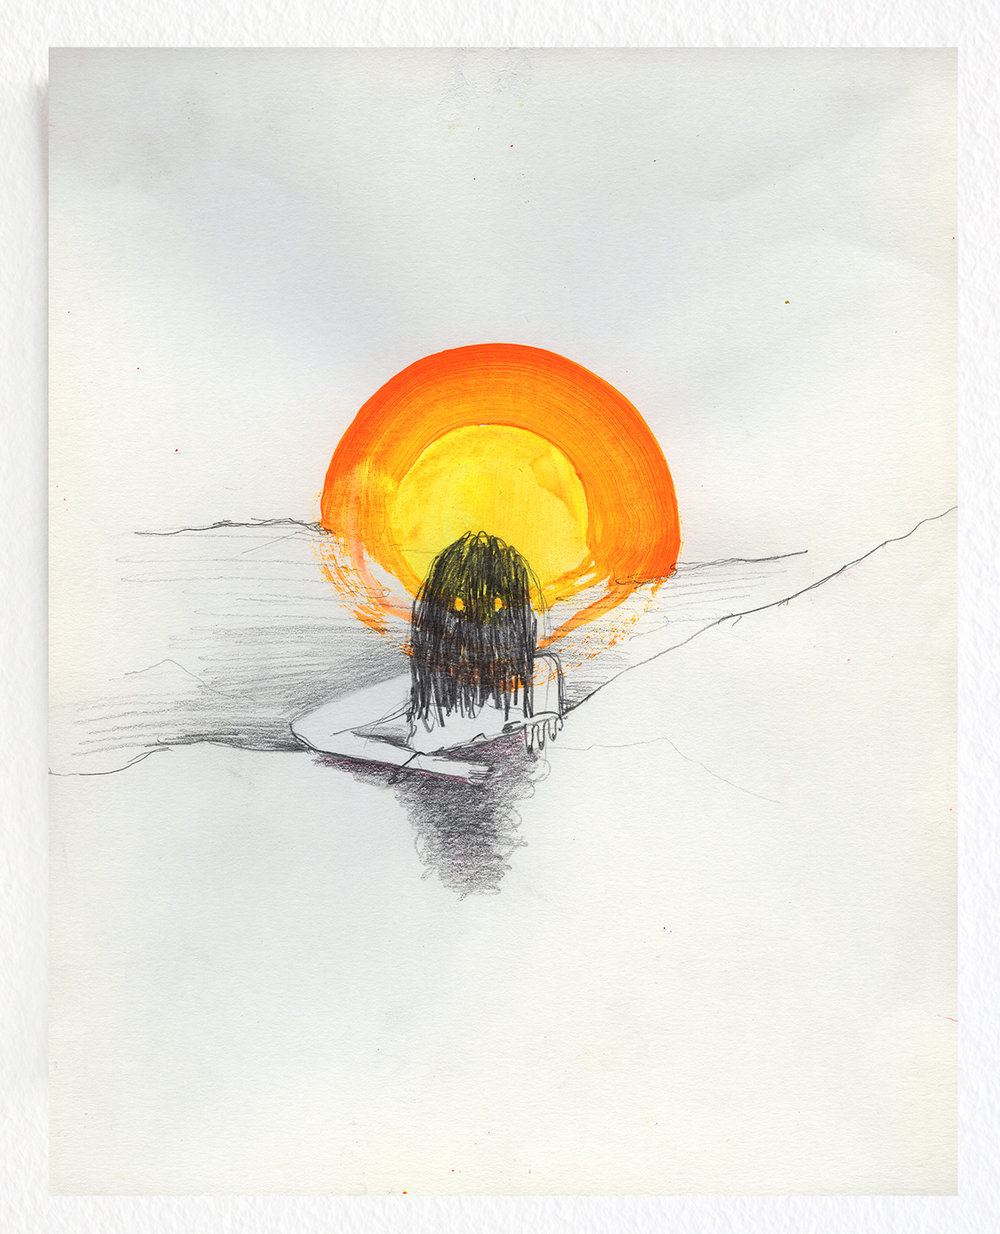 Untitled / 2013, pencil and qouache on paper - 20 x 25 cm